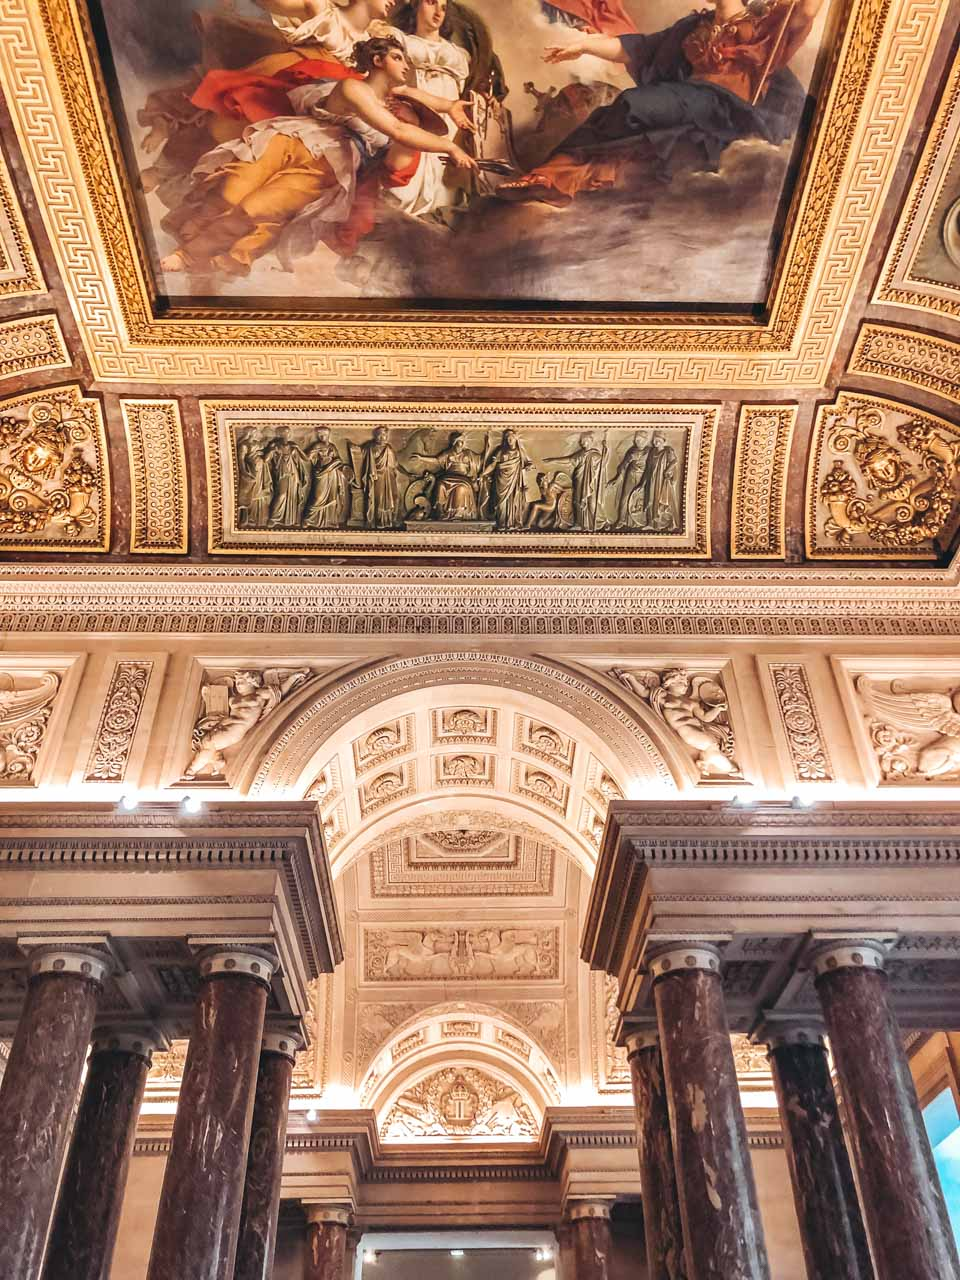 Ceiling art at the Louvre in Paris, France, including a fresco, gilded embellishments, and little carved statues and details